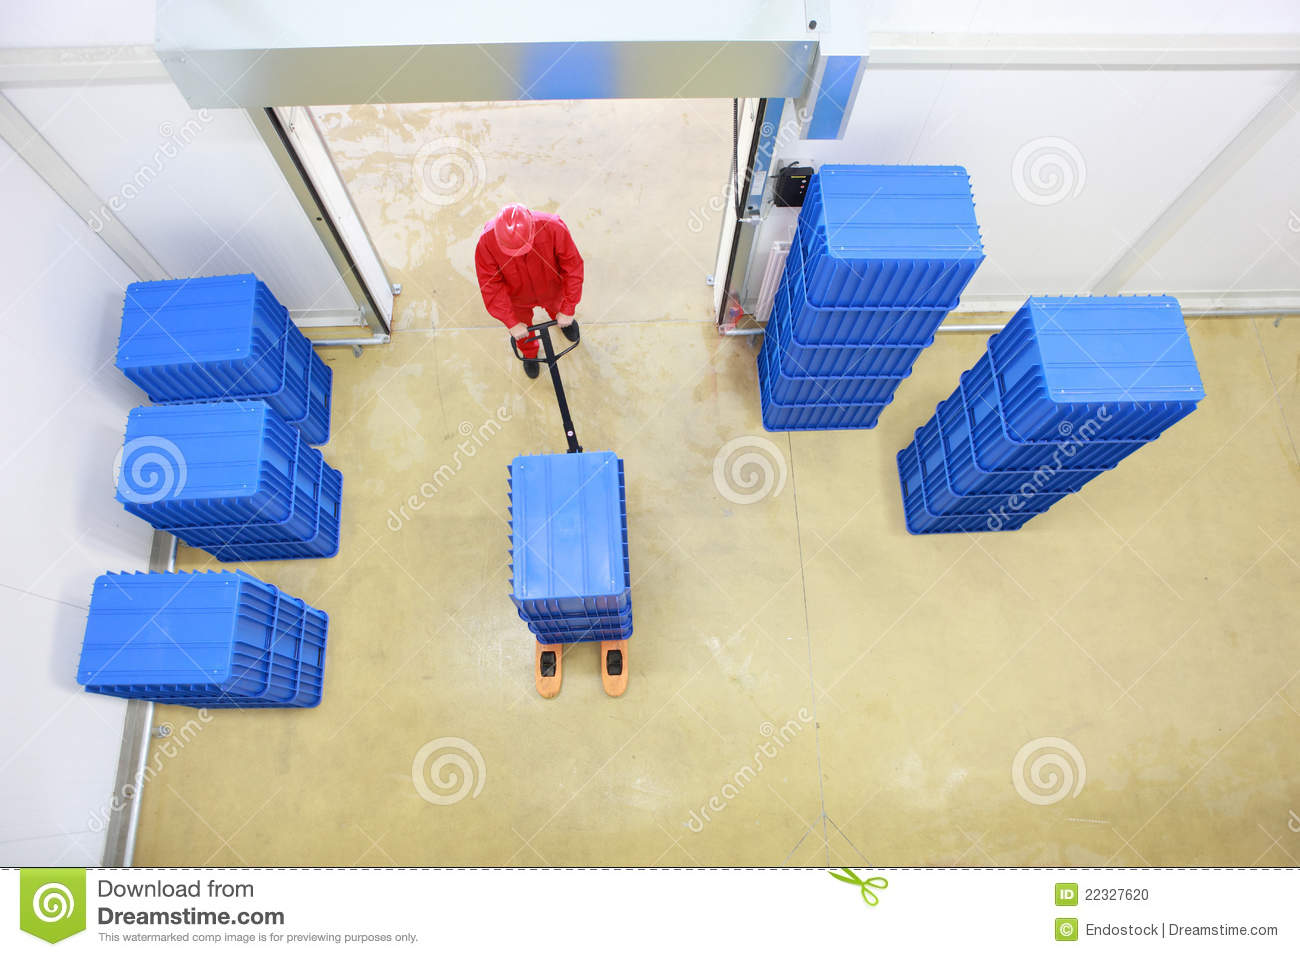 Overhead view of worker working in storehouse